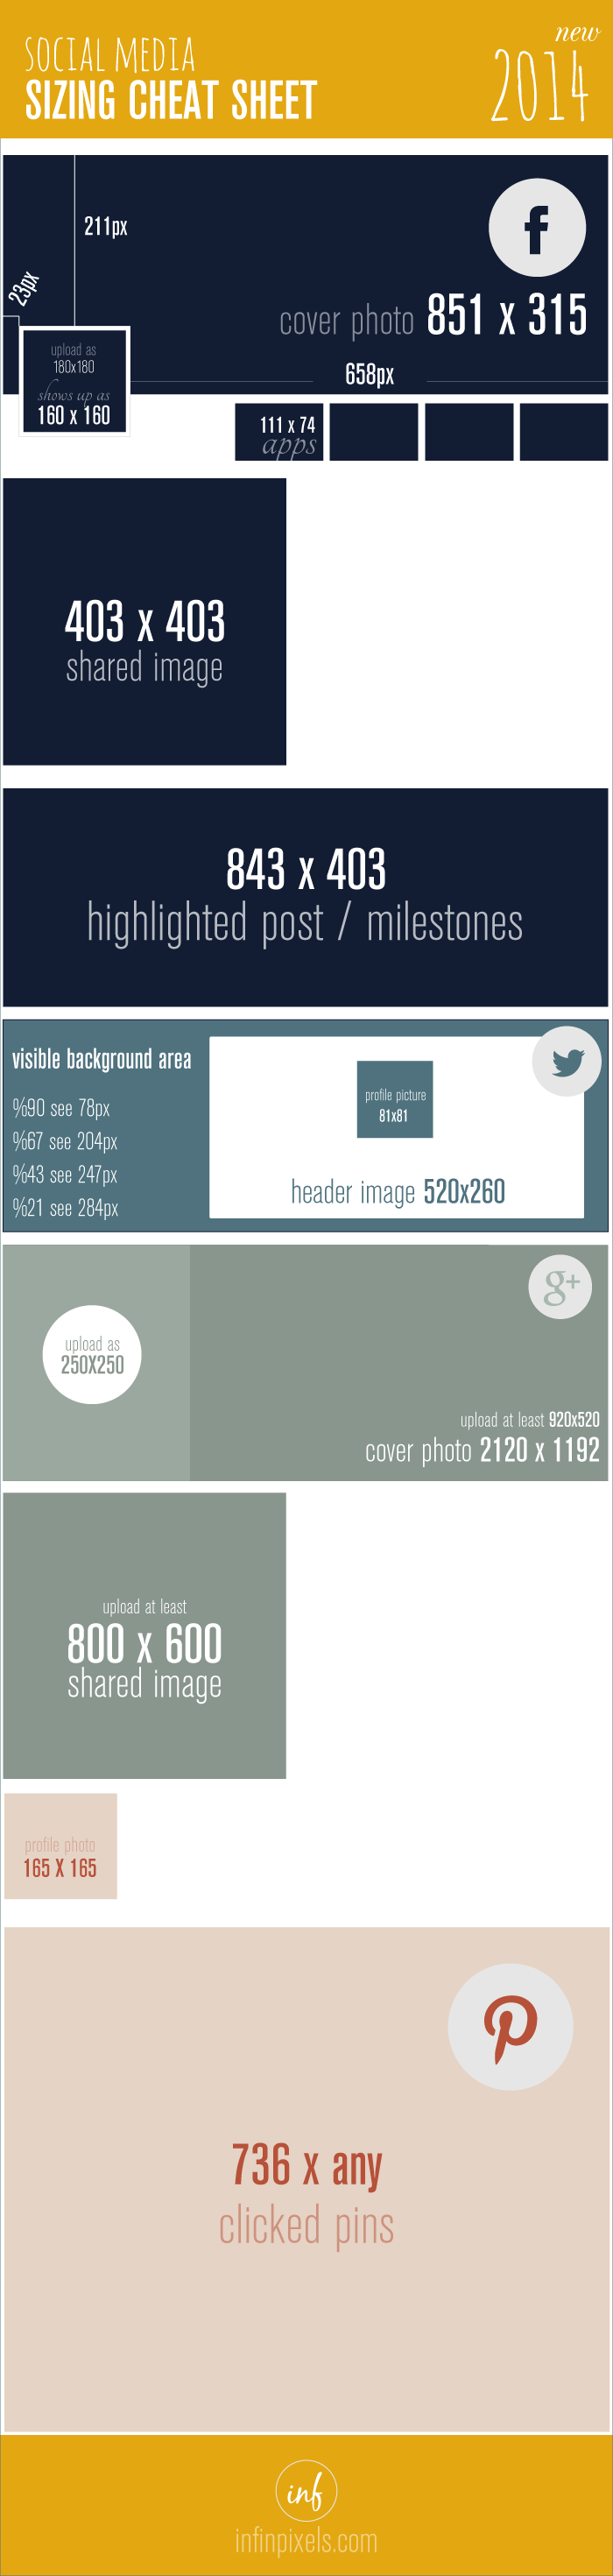 social-media-image-size-cheat-sheet-2014